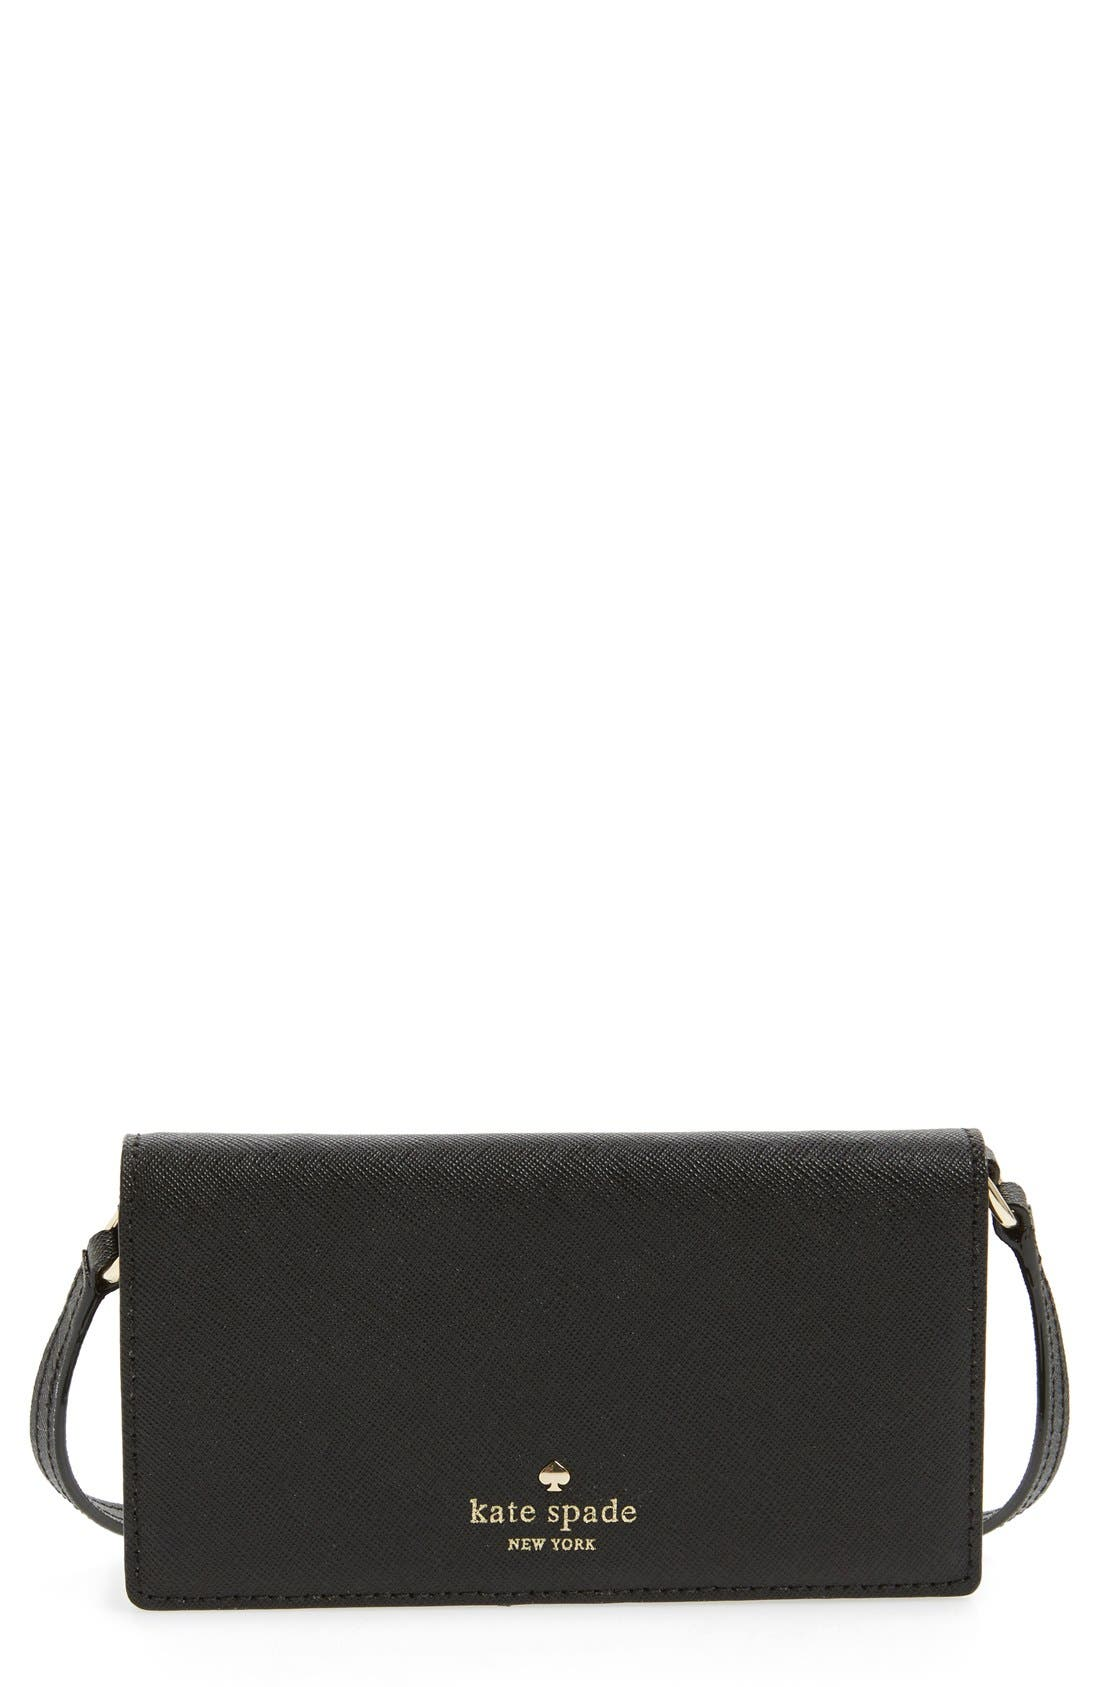 kate spade new york iPhone 6 & 6s leather crossbody wallet